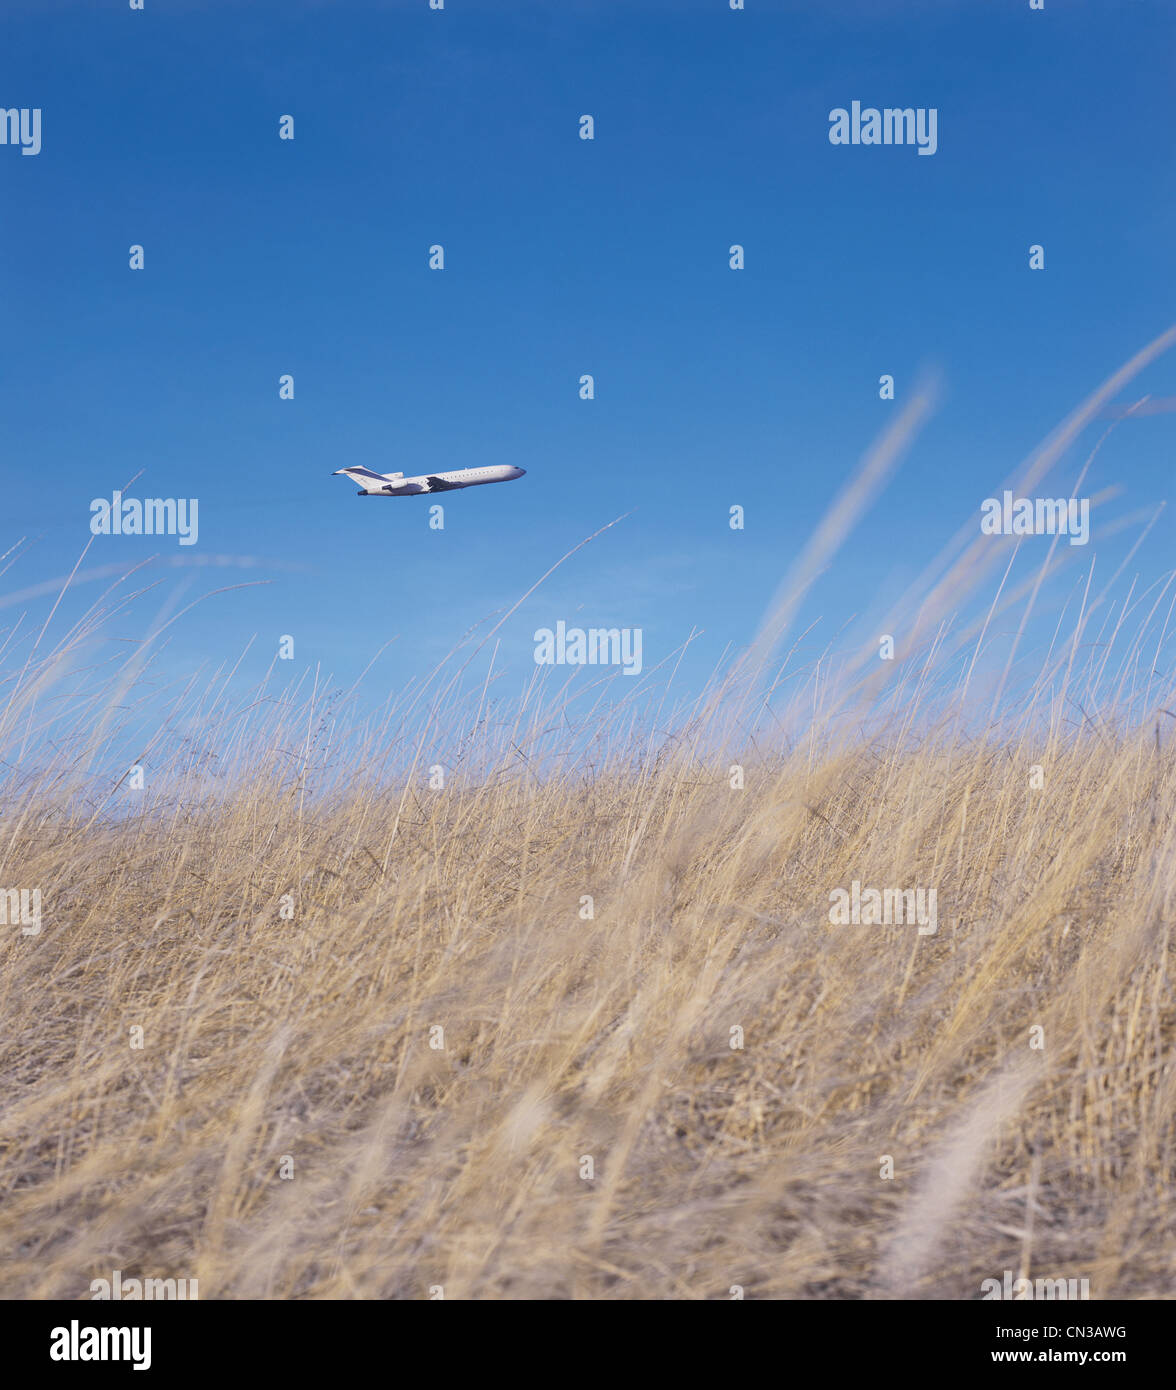 Airplane flying over grassy field - Stock Image